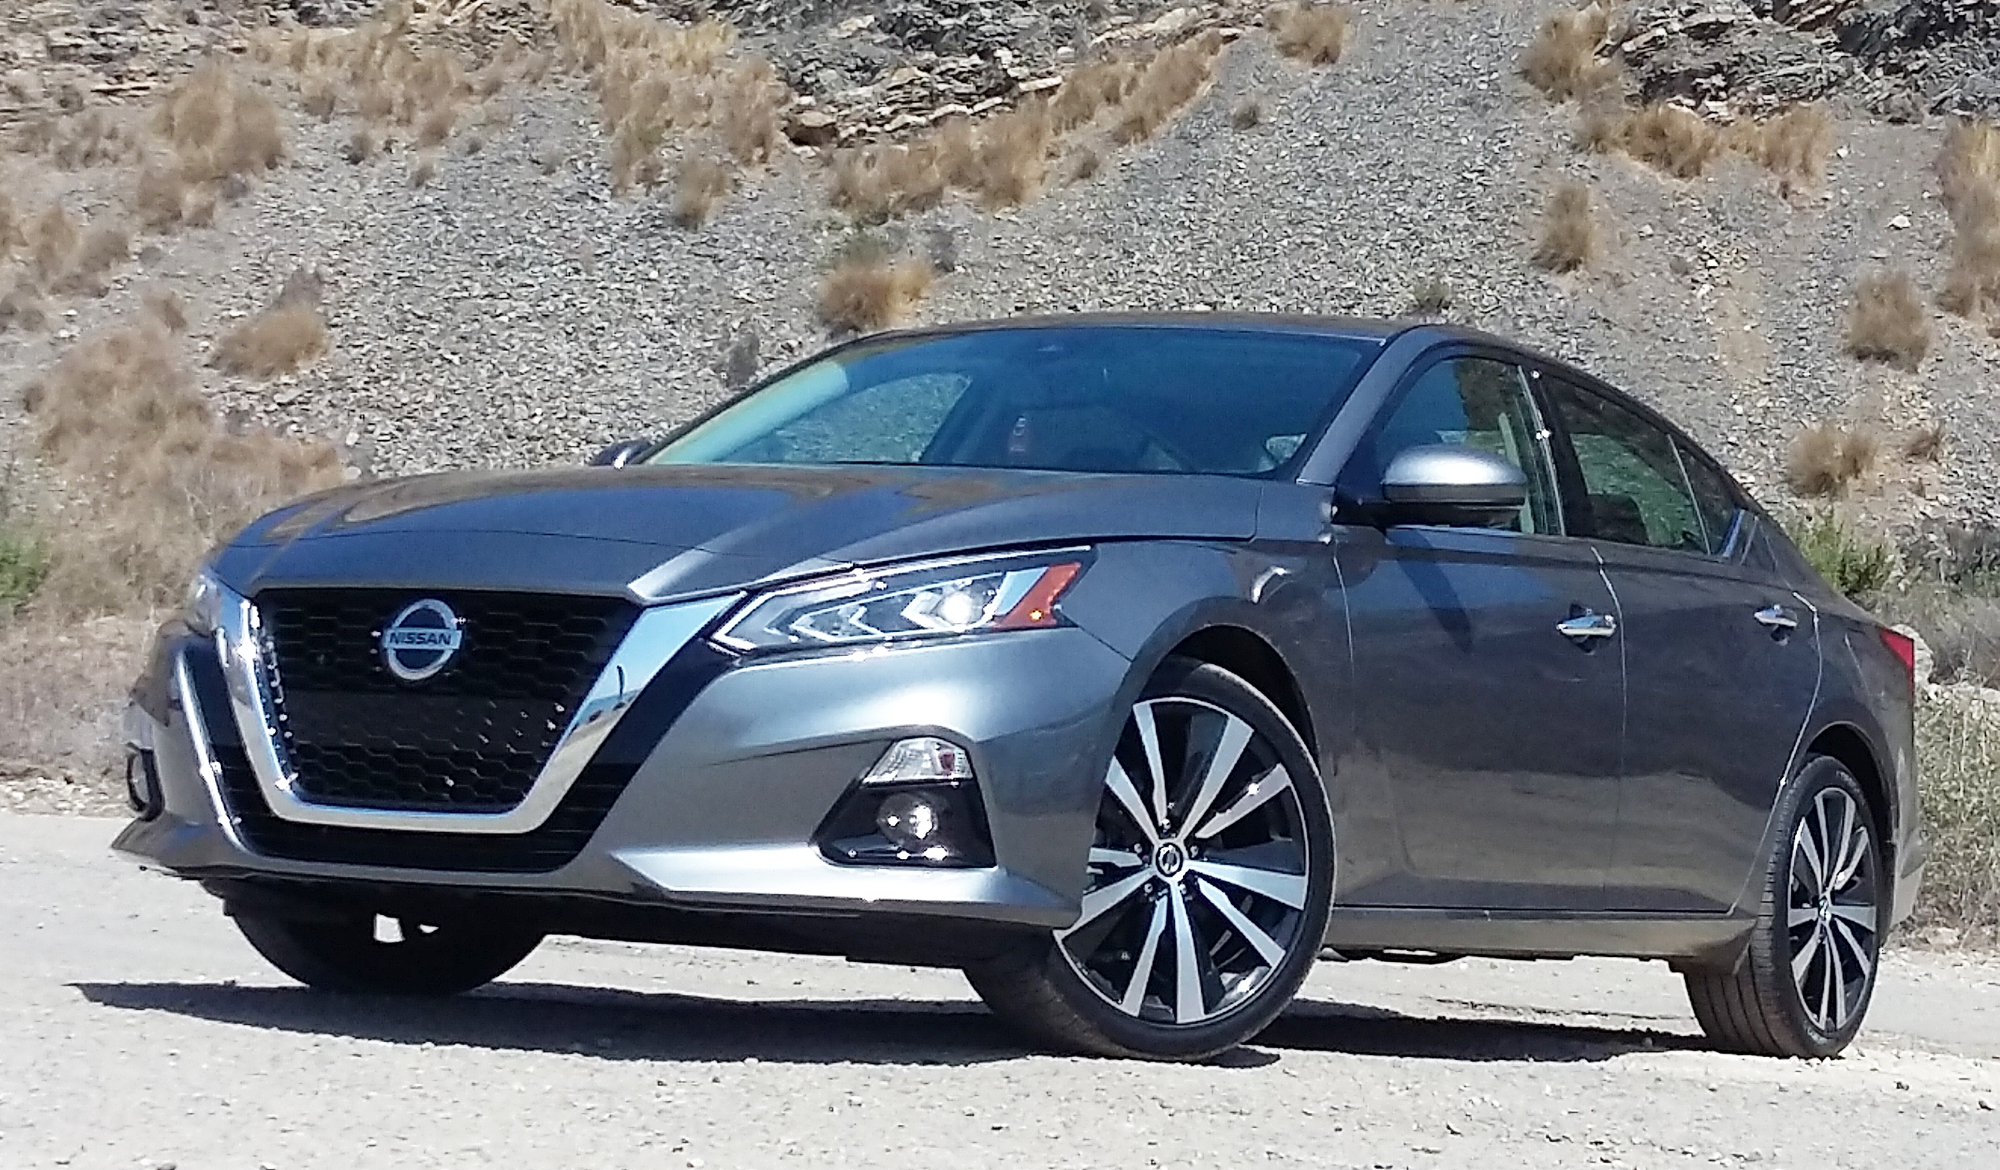 2019 Nissan Altima The Daily Drive | Consumer Guide®